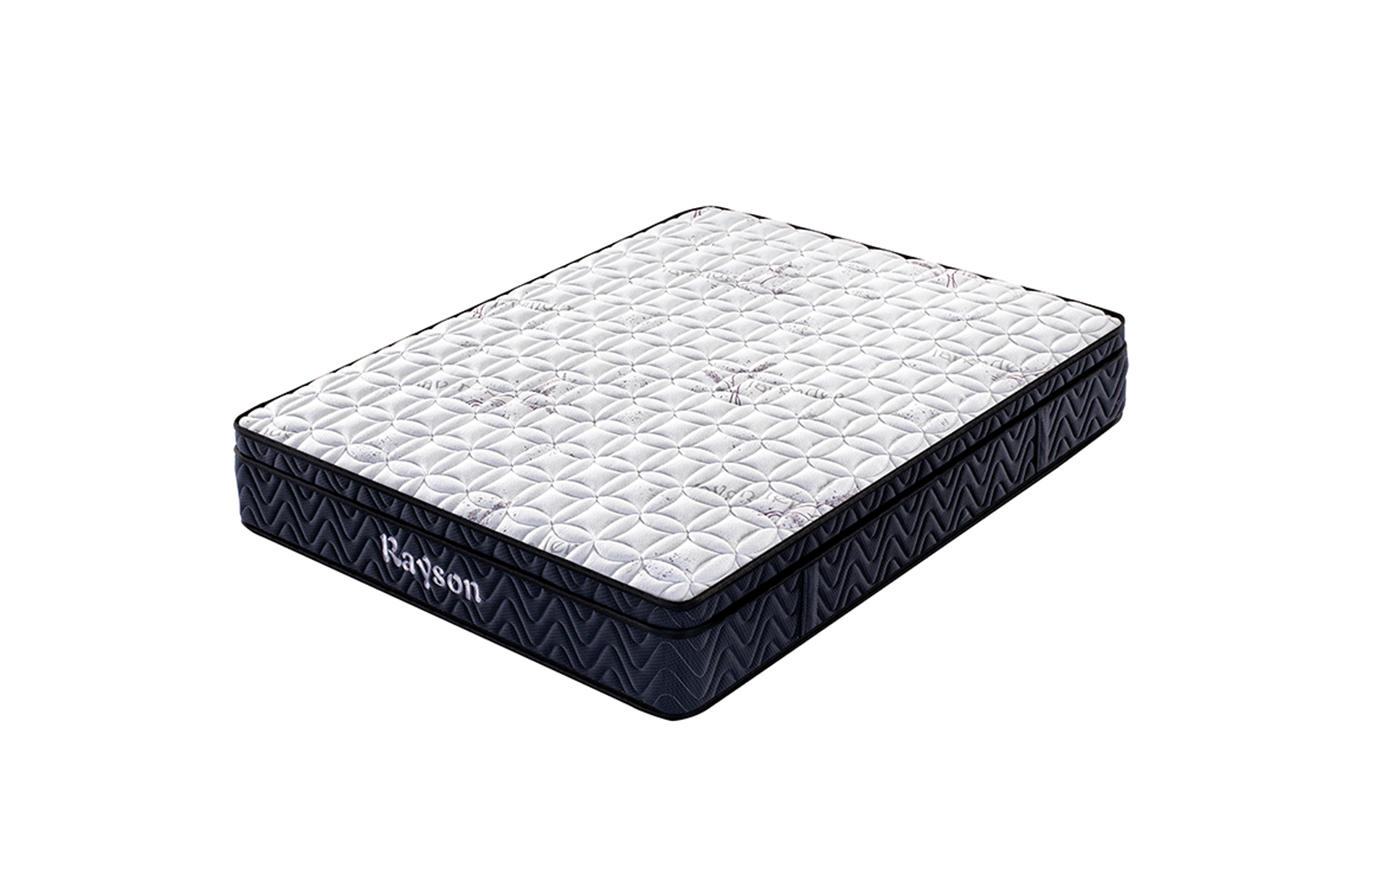 Rayson Mattress Custom westin hotel mattress Supply